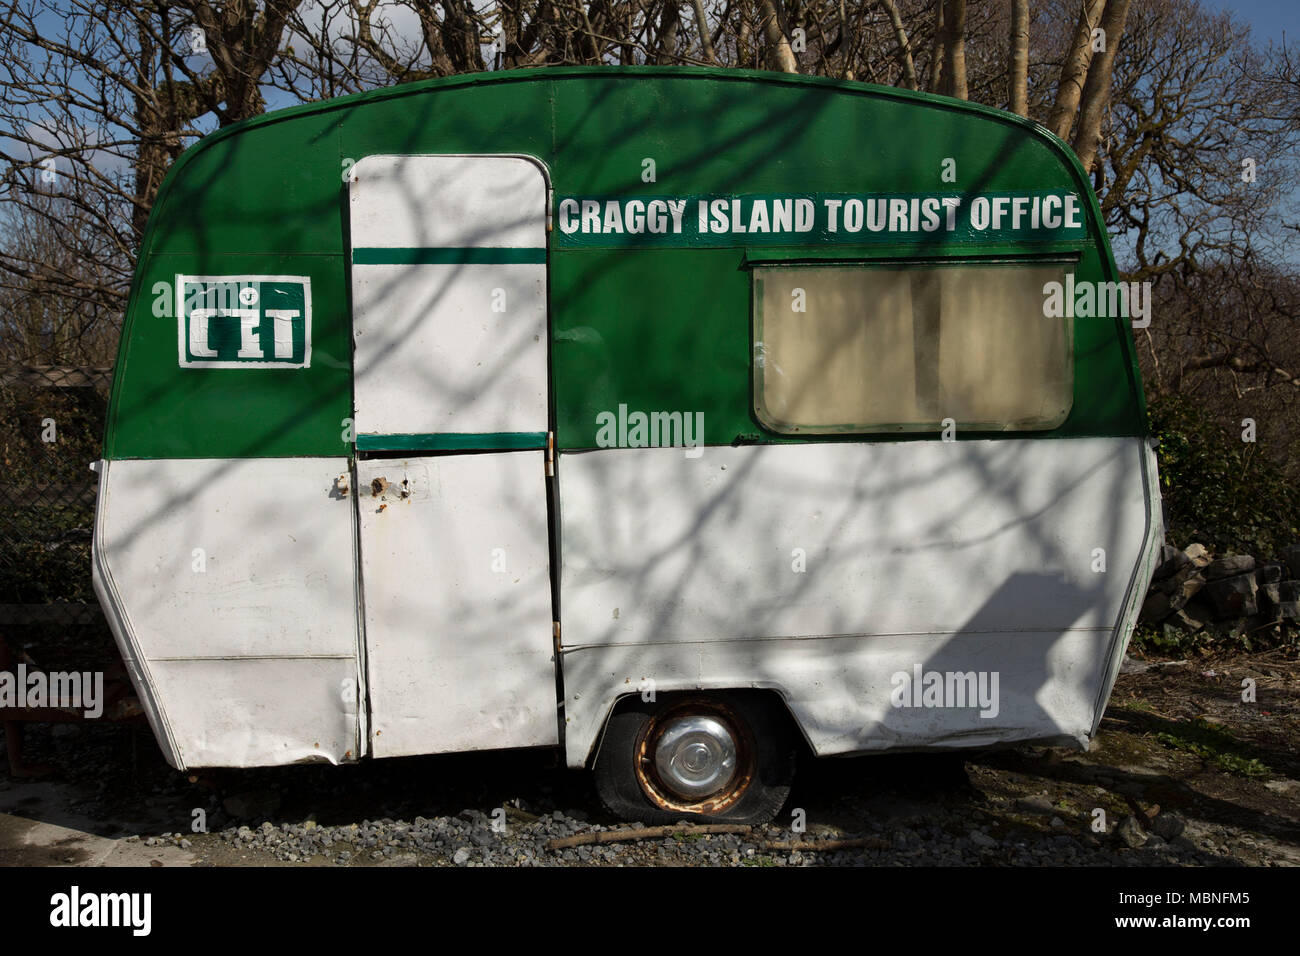 Craggy Island tourist office in Winter - Stock Image